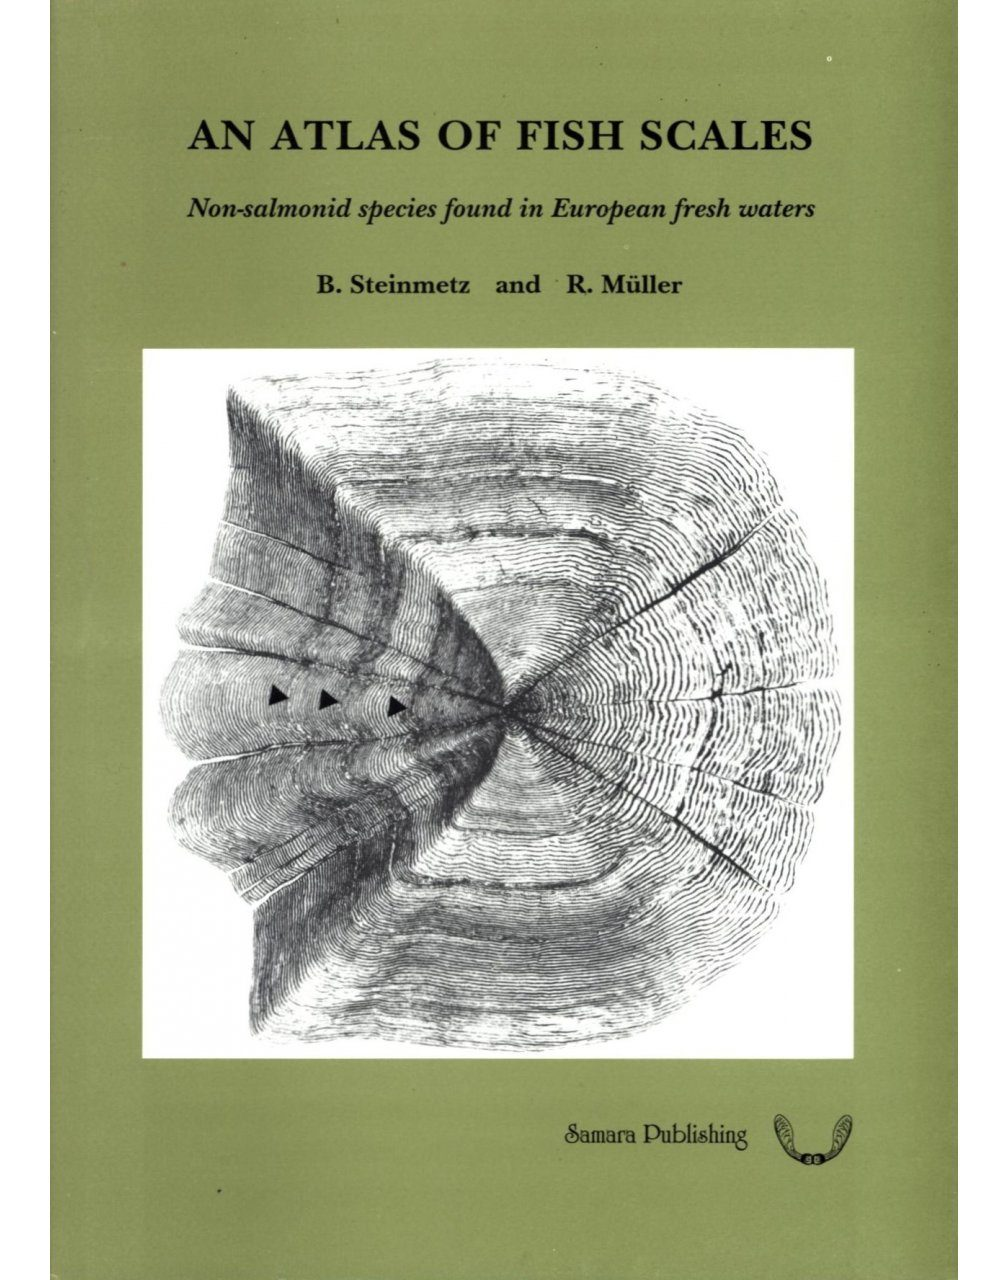 An Atlas of Fish Scales, Volume 1